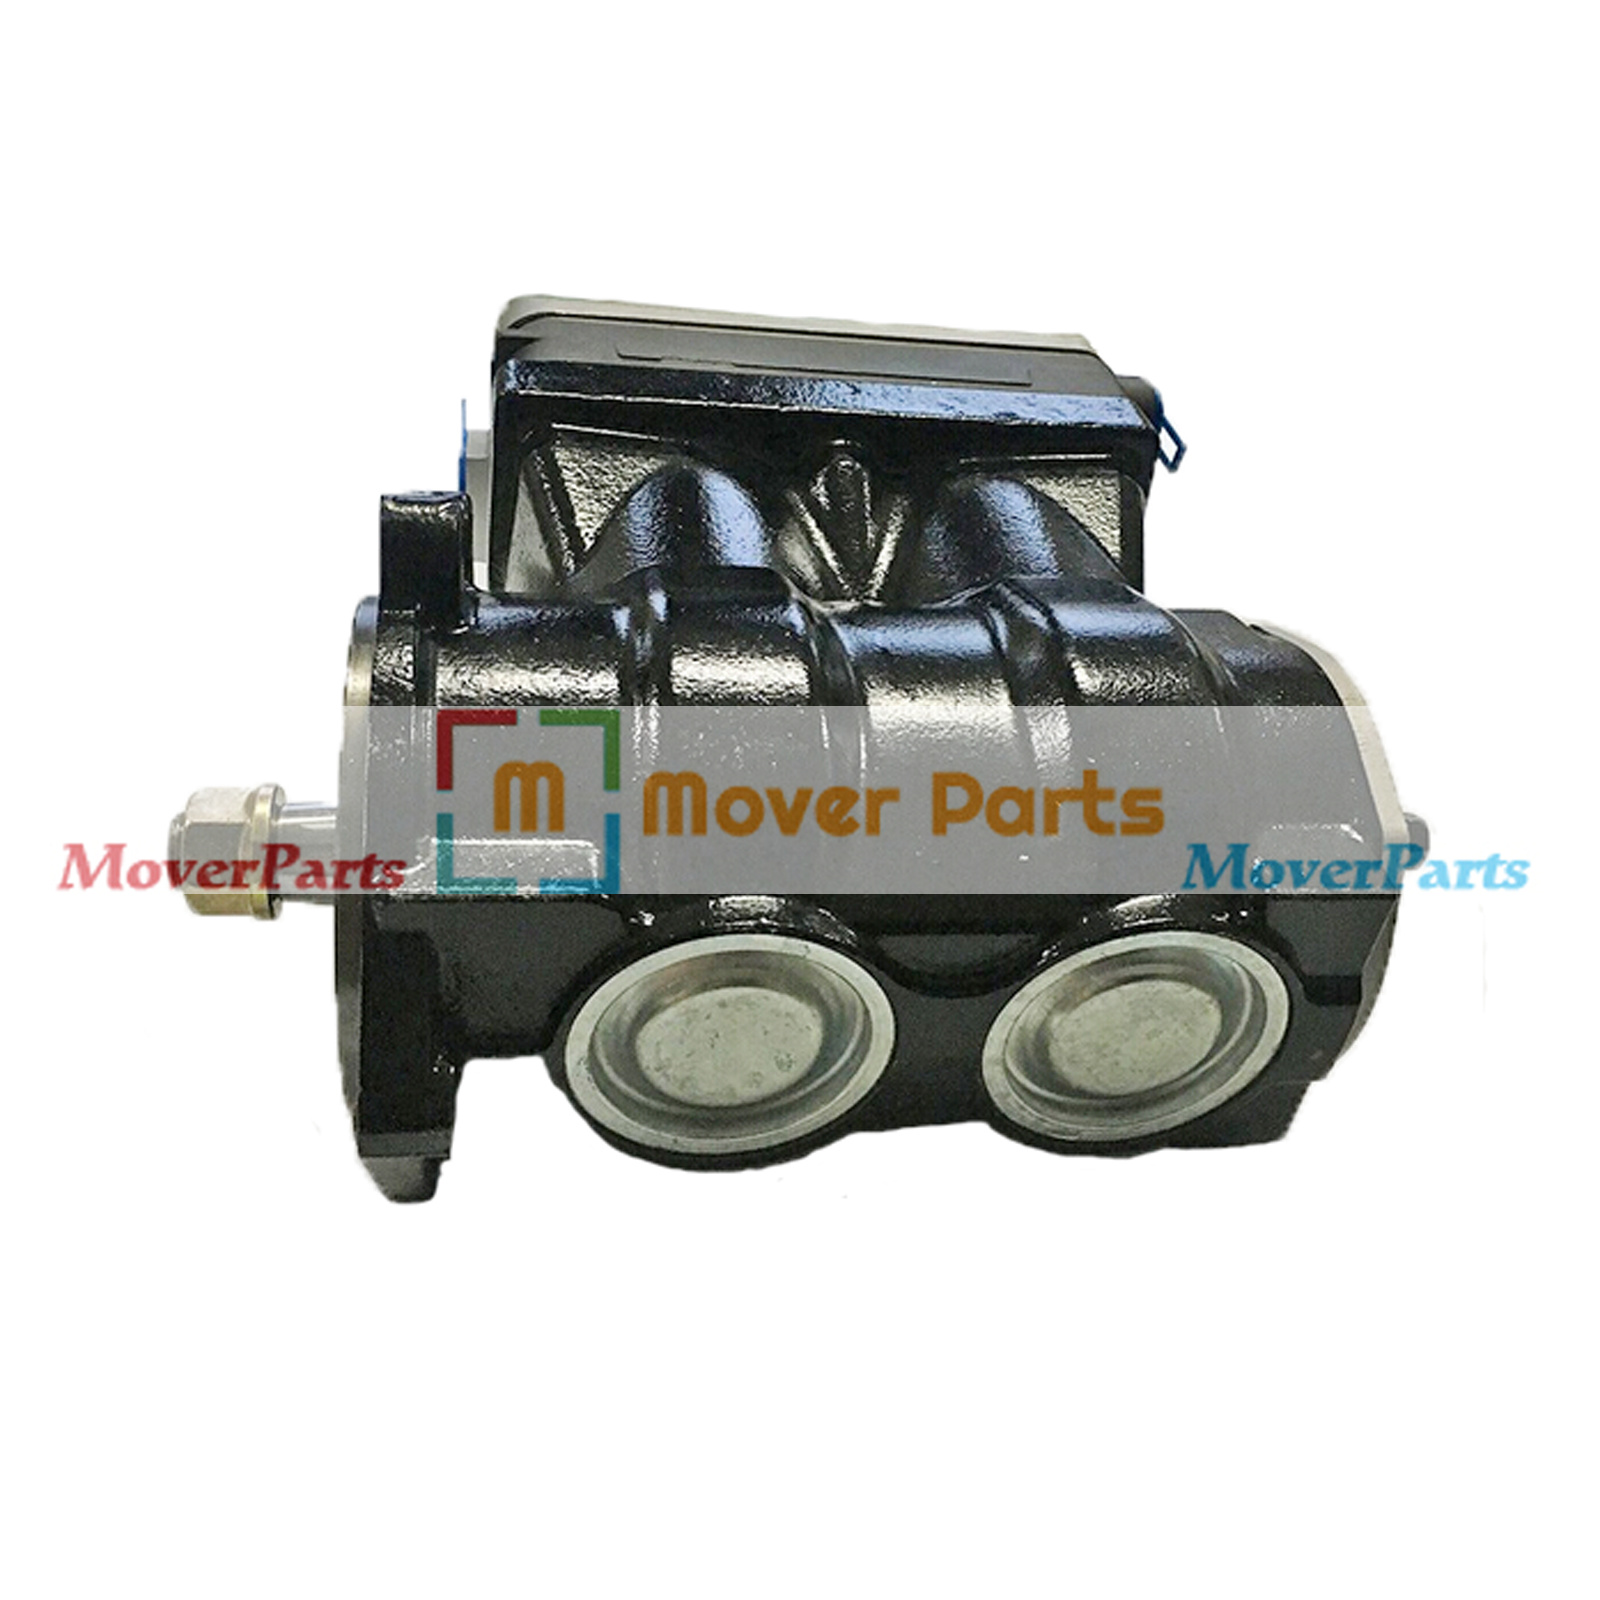 Details about Brake Air Compressor 412704008R 4127040080 4127040050  4127040040 for Wabco